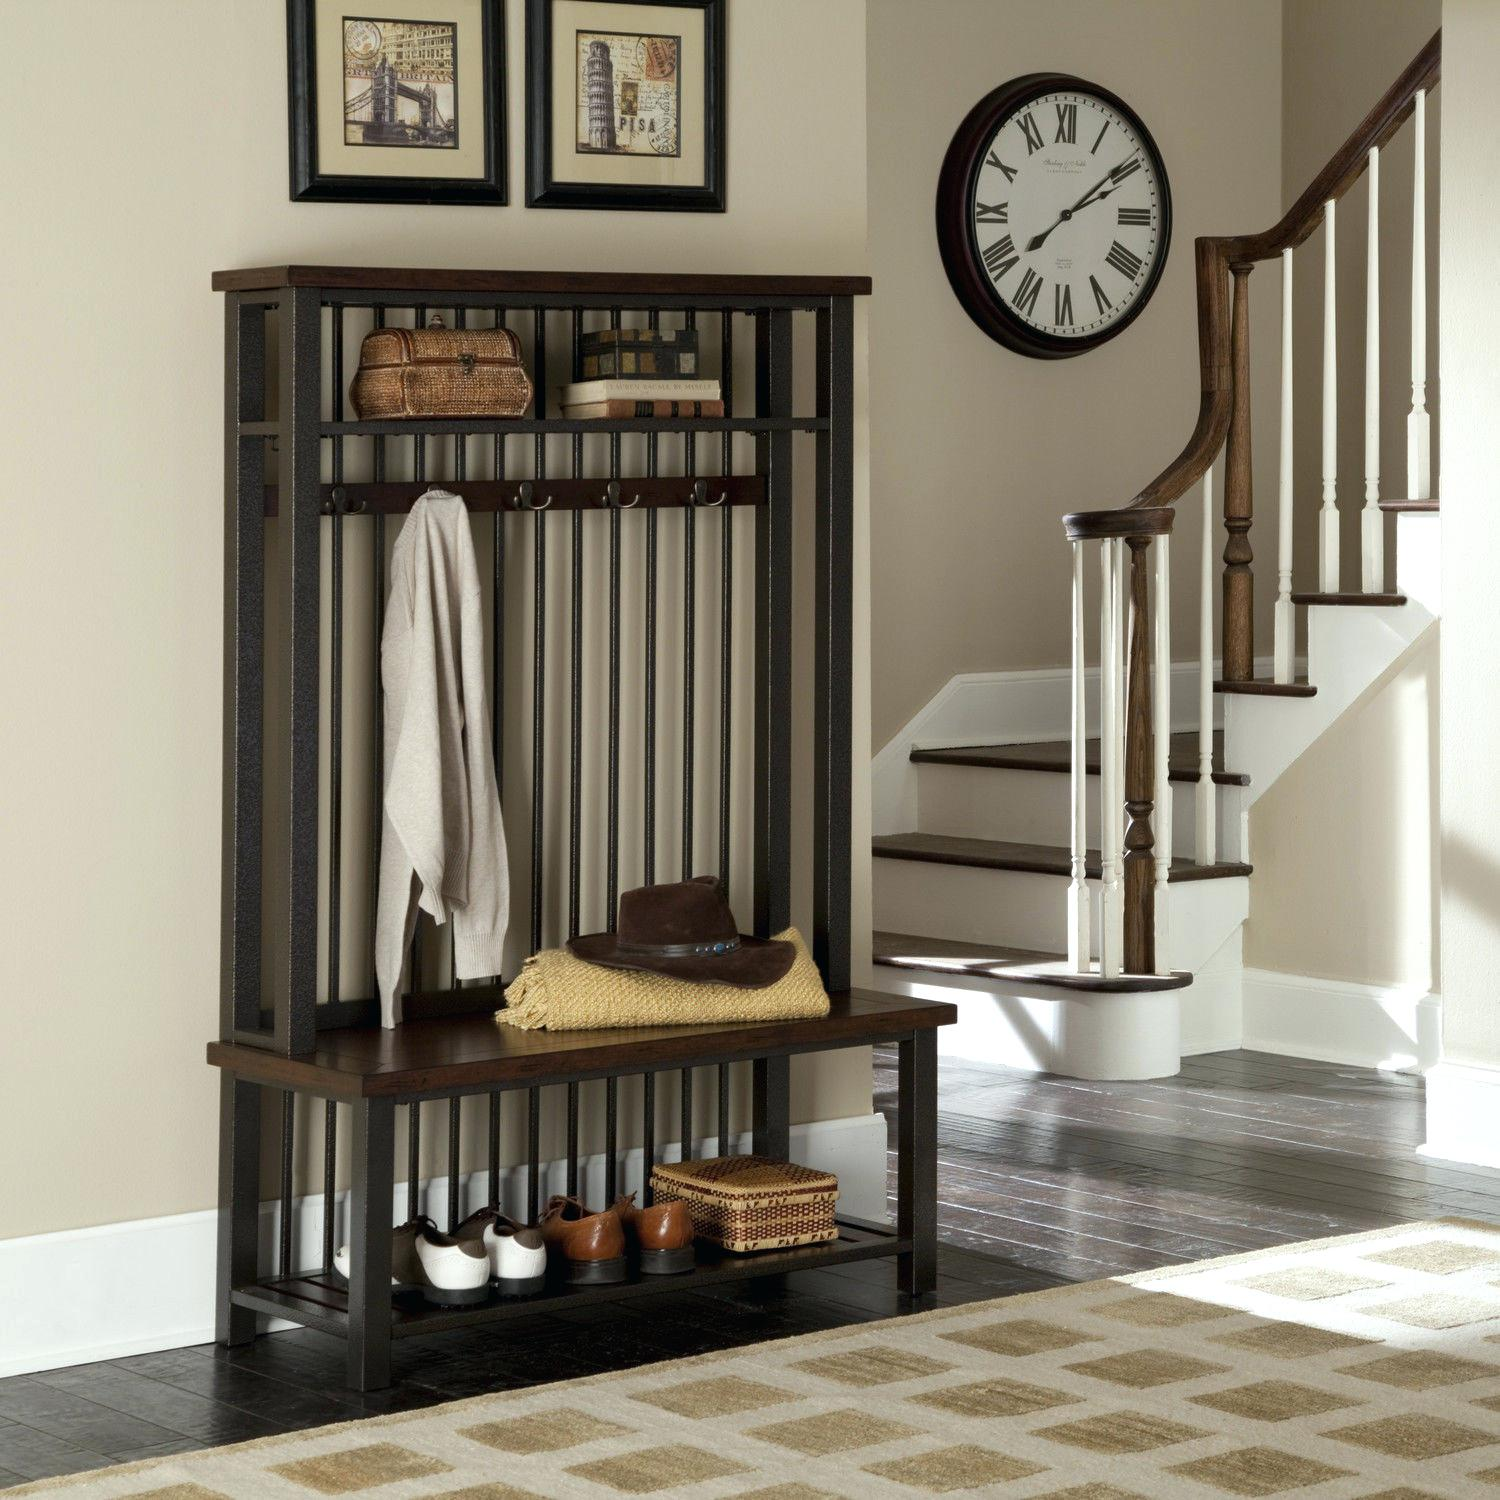 Entryway Coat Rack and Bench | Entryway Storage Bench with Coat Rack | Entryway Storage Bench with Coat Rack